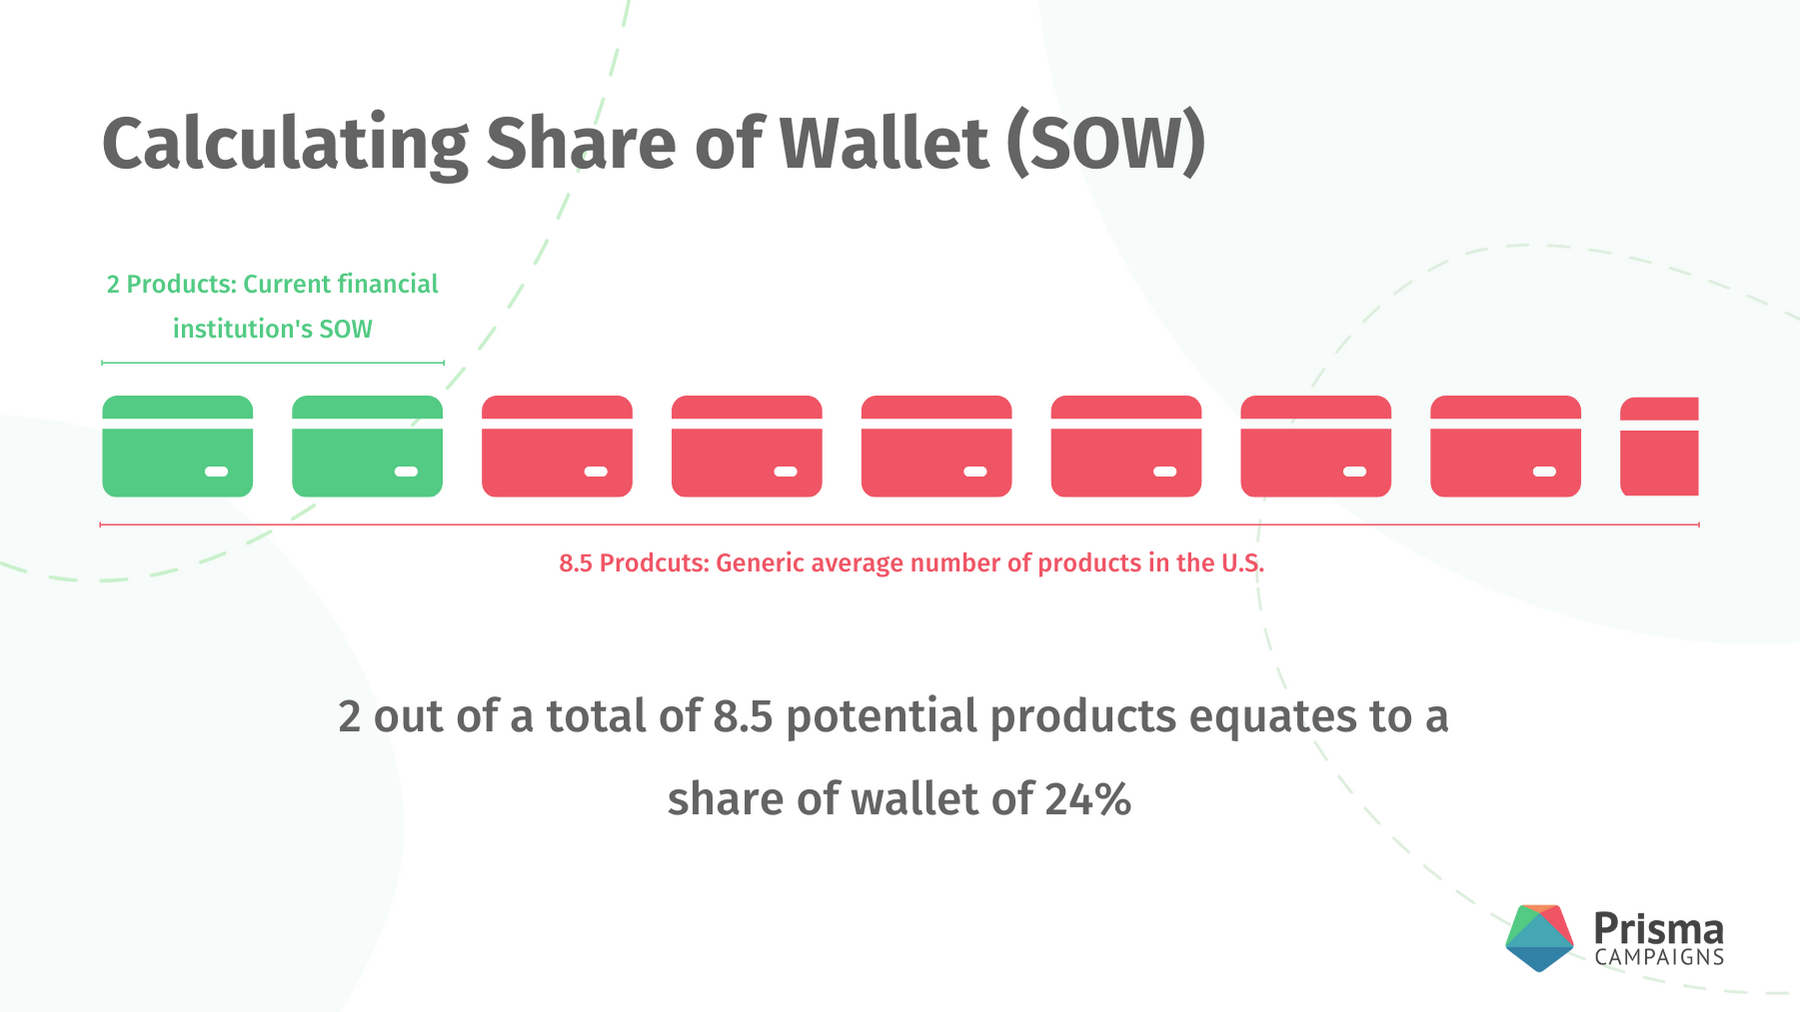 Calculating Share of Wallet